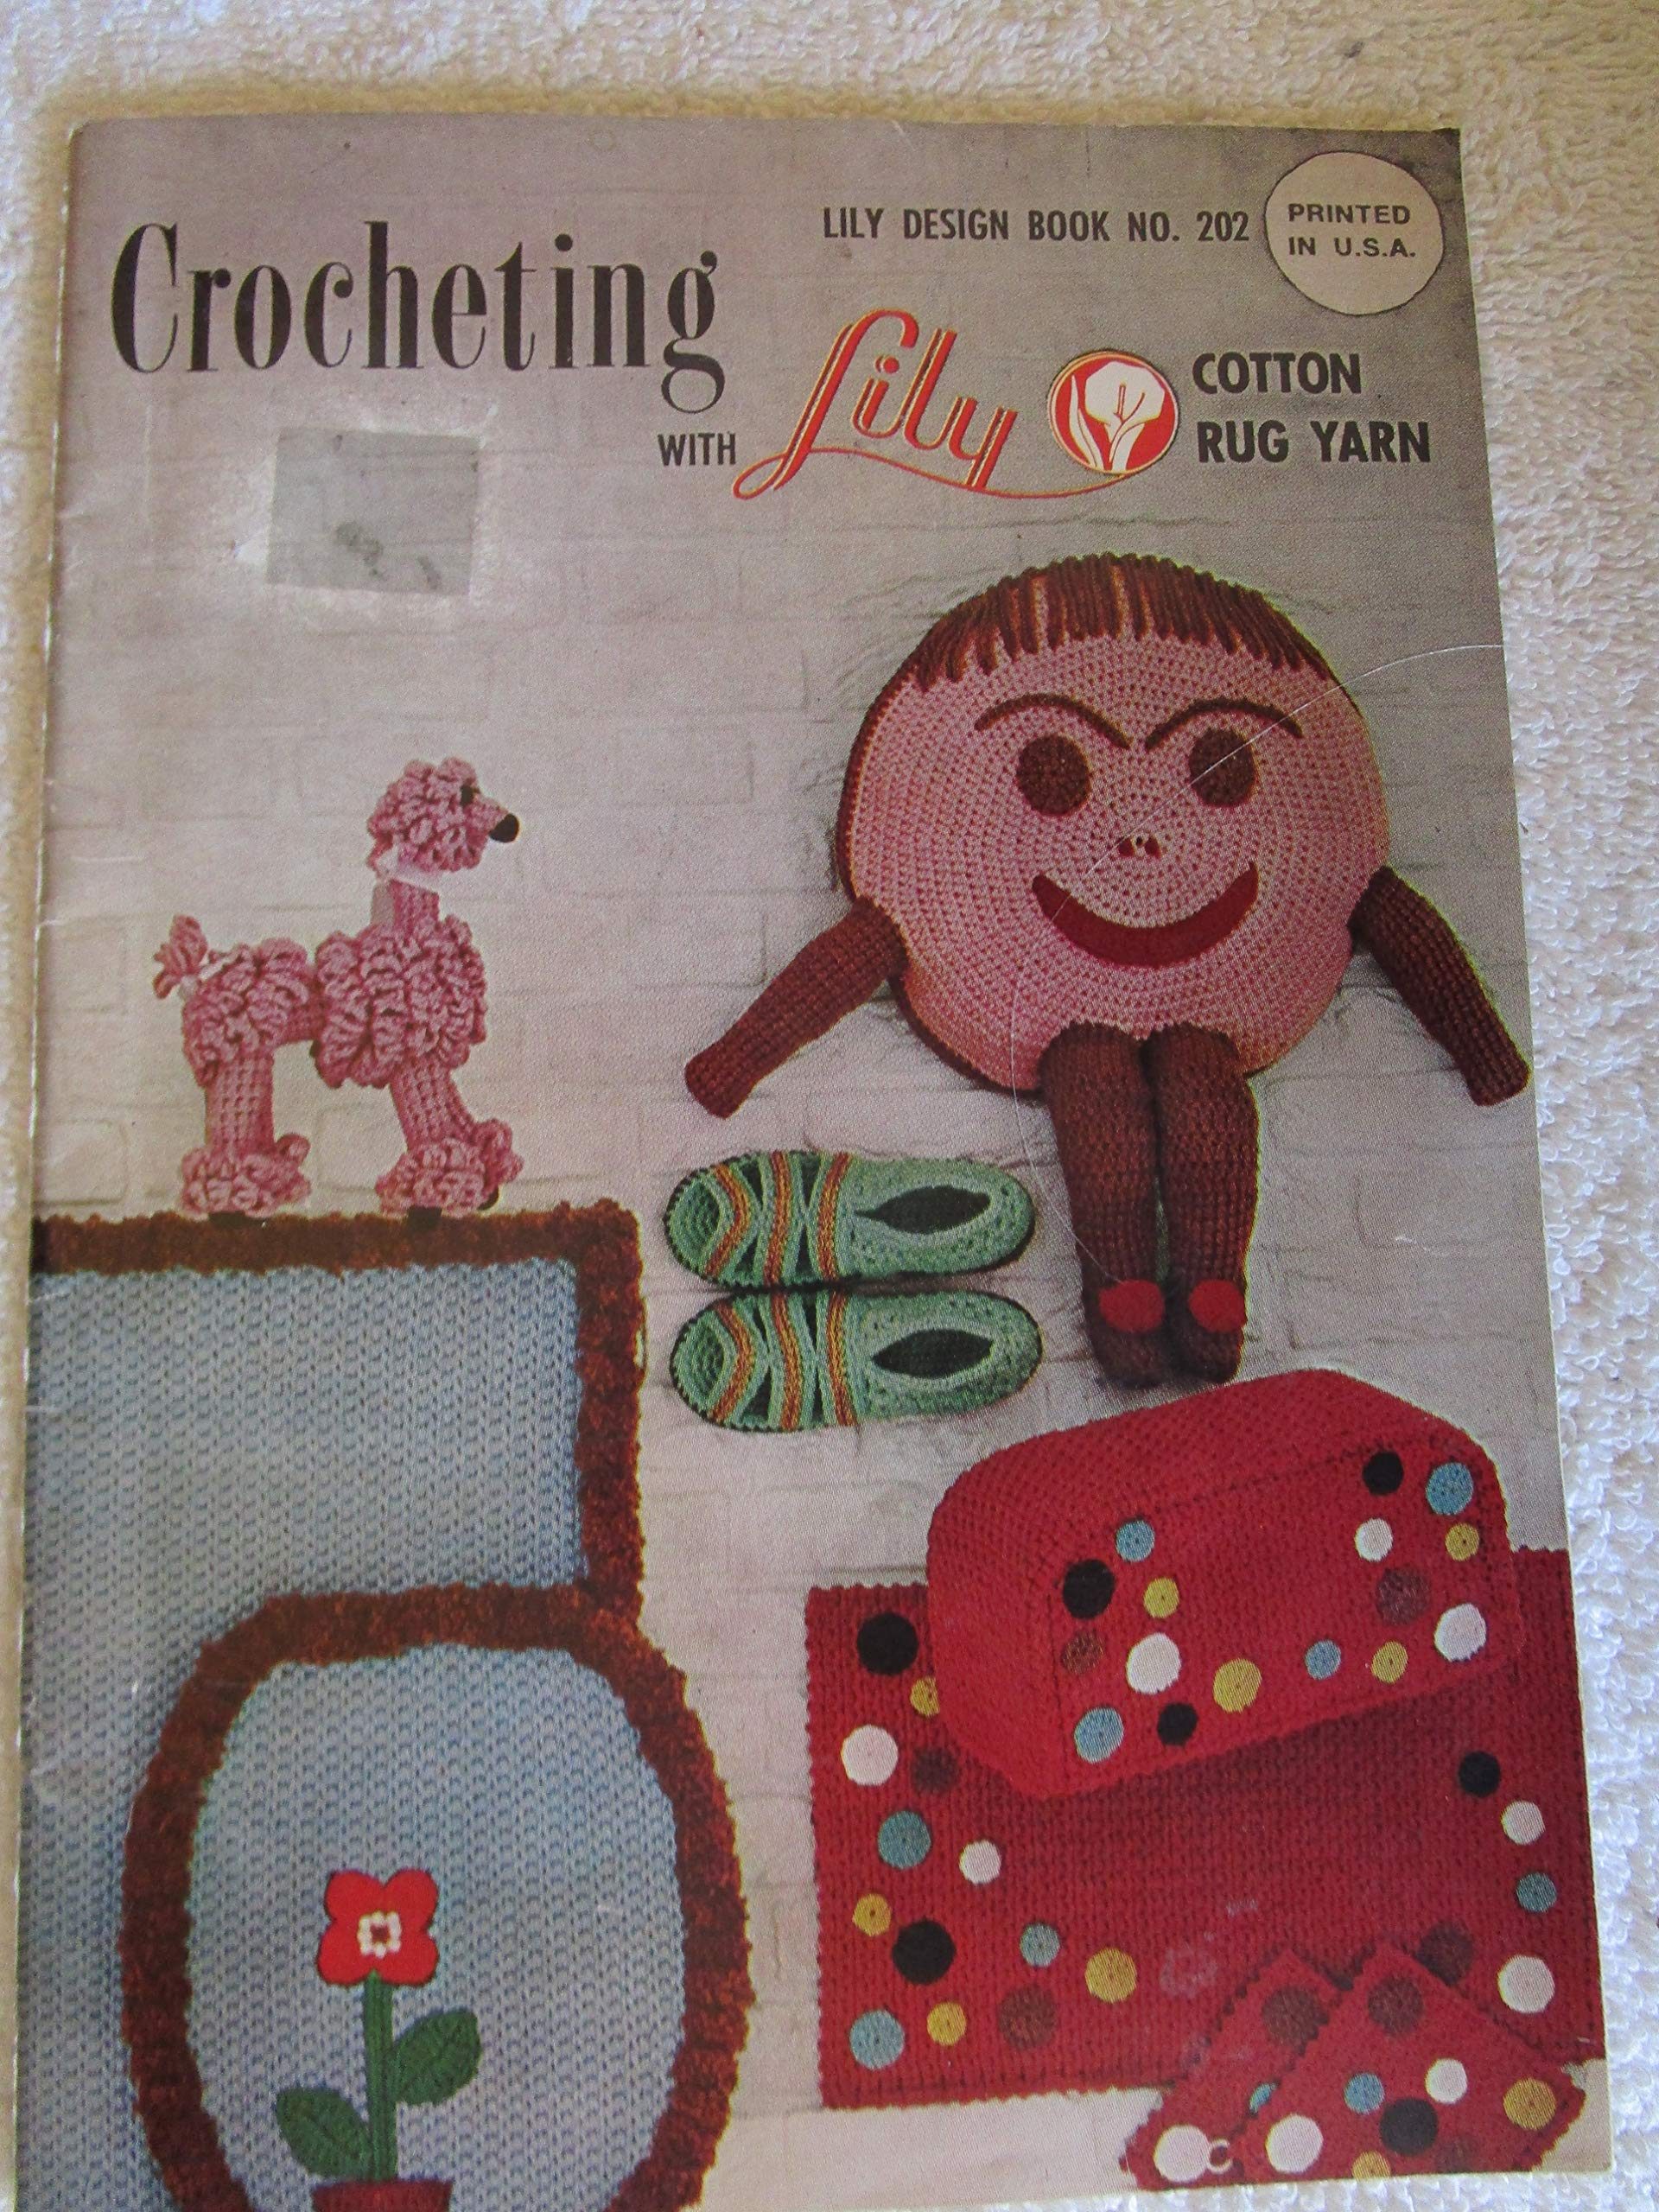 Crocheting with Lily Cotton Rug Yarn, Lily Design Book No 202